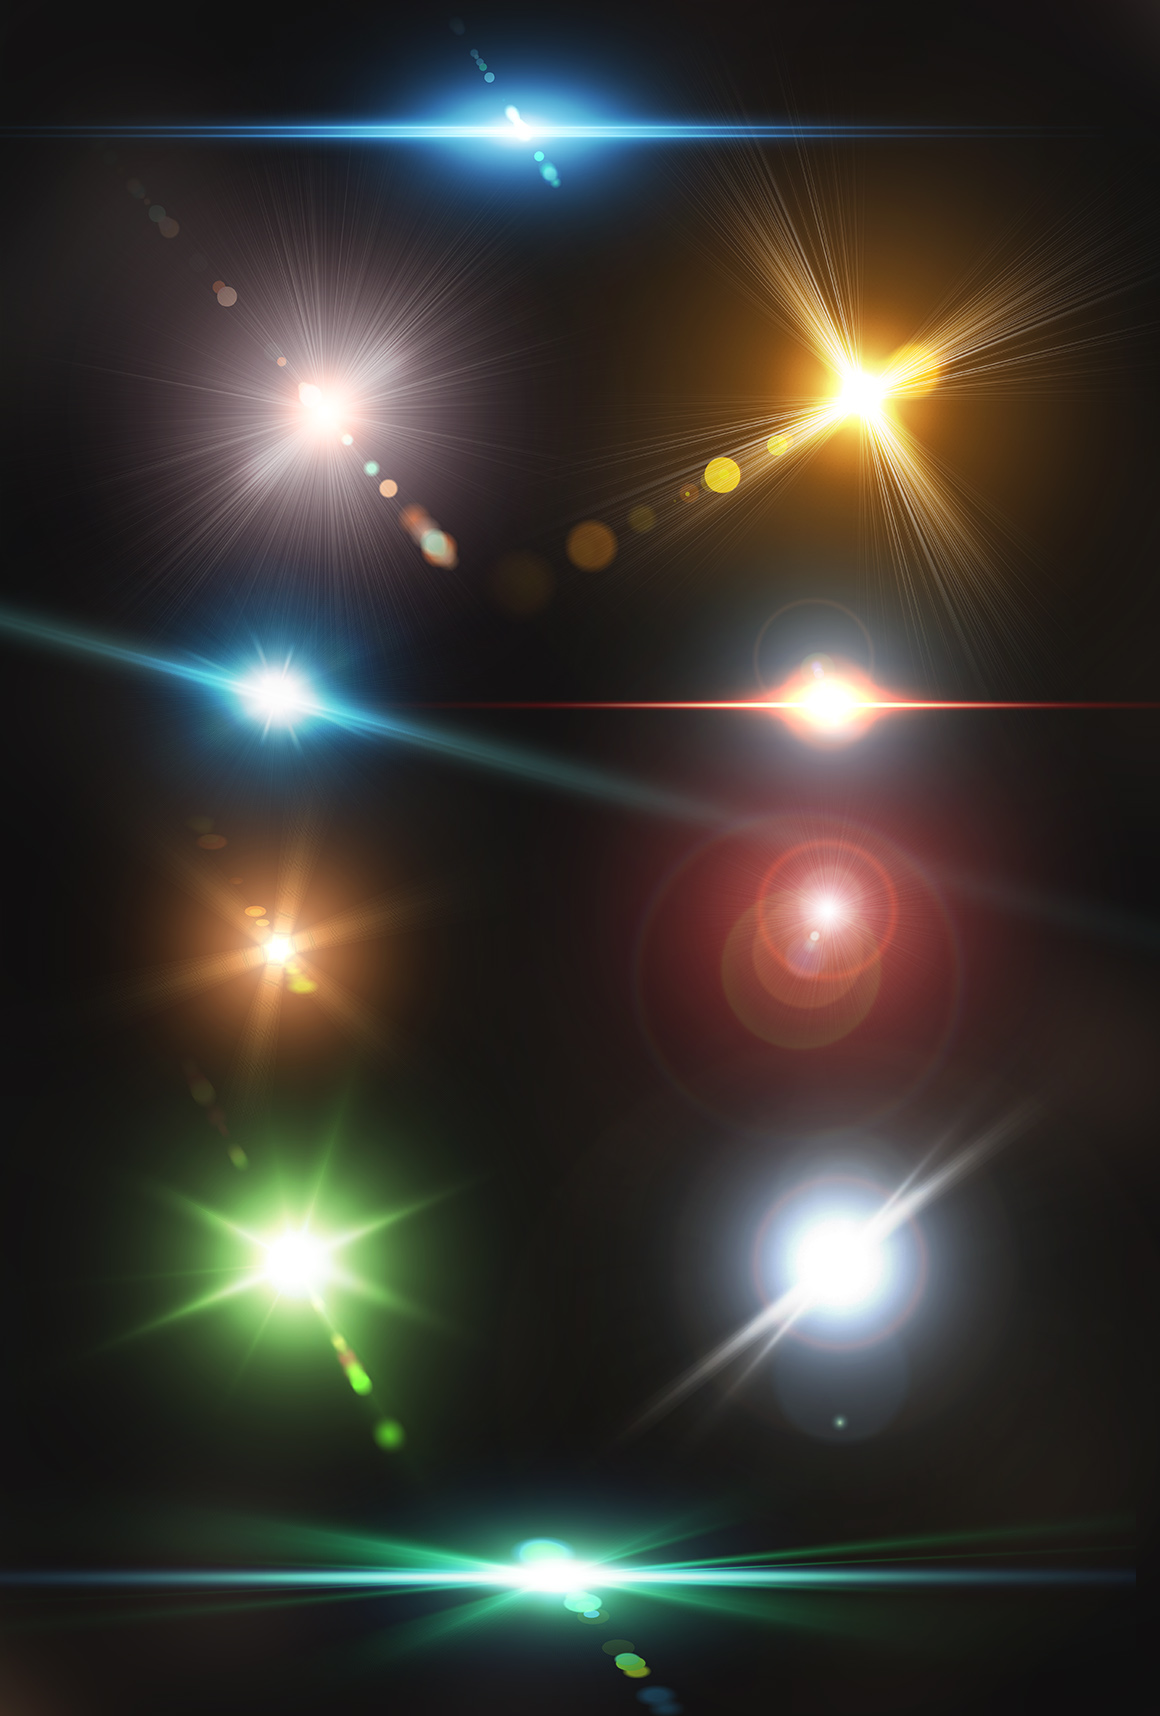 10 Optical Lens Flares Pack 2 in Design Elements on Yellow.